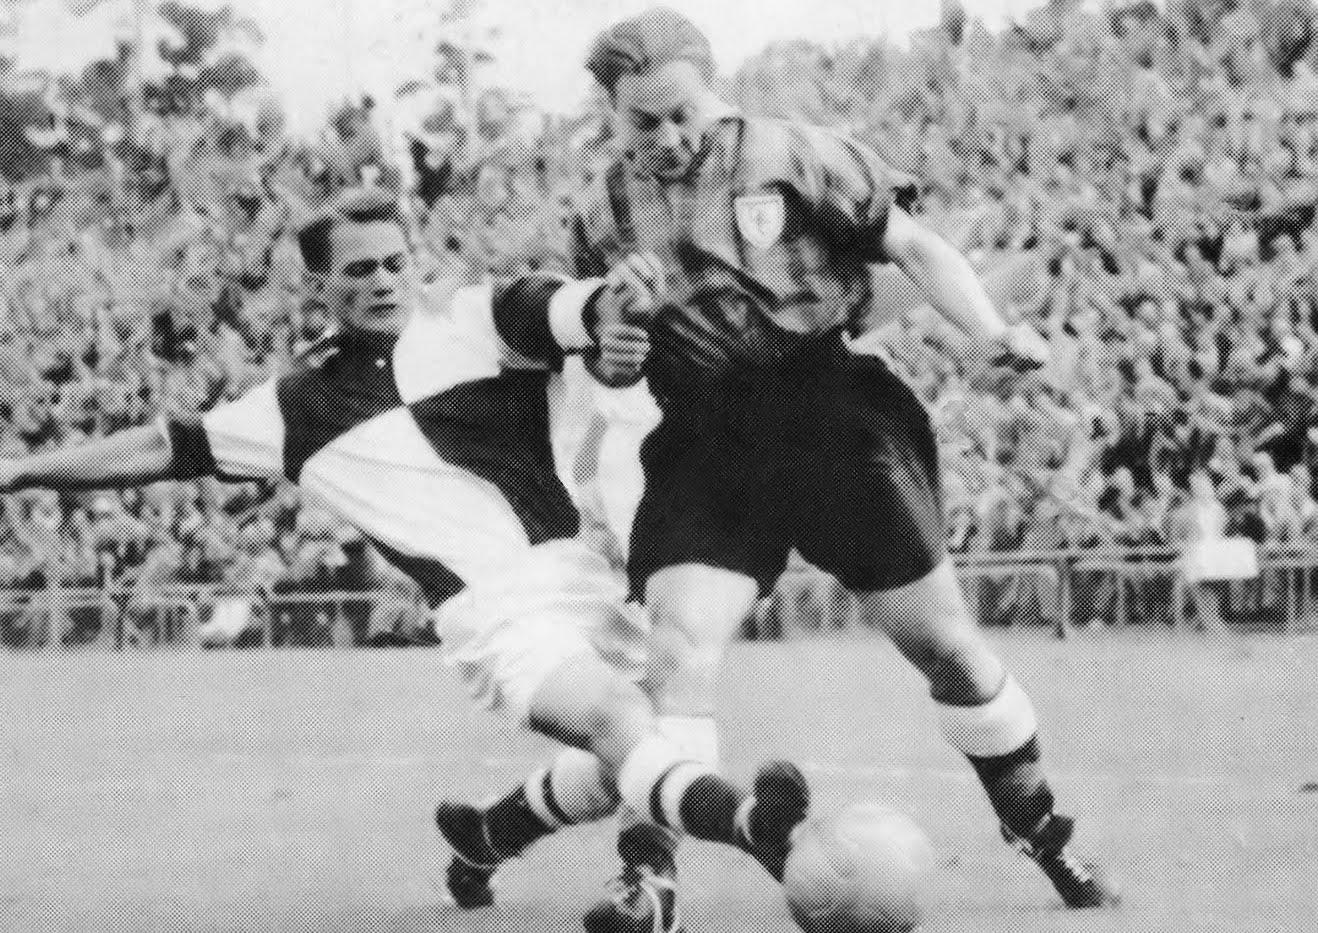 12 dundee tartan kit 1953 - worst soccer uniforms all time - worst football kits all time